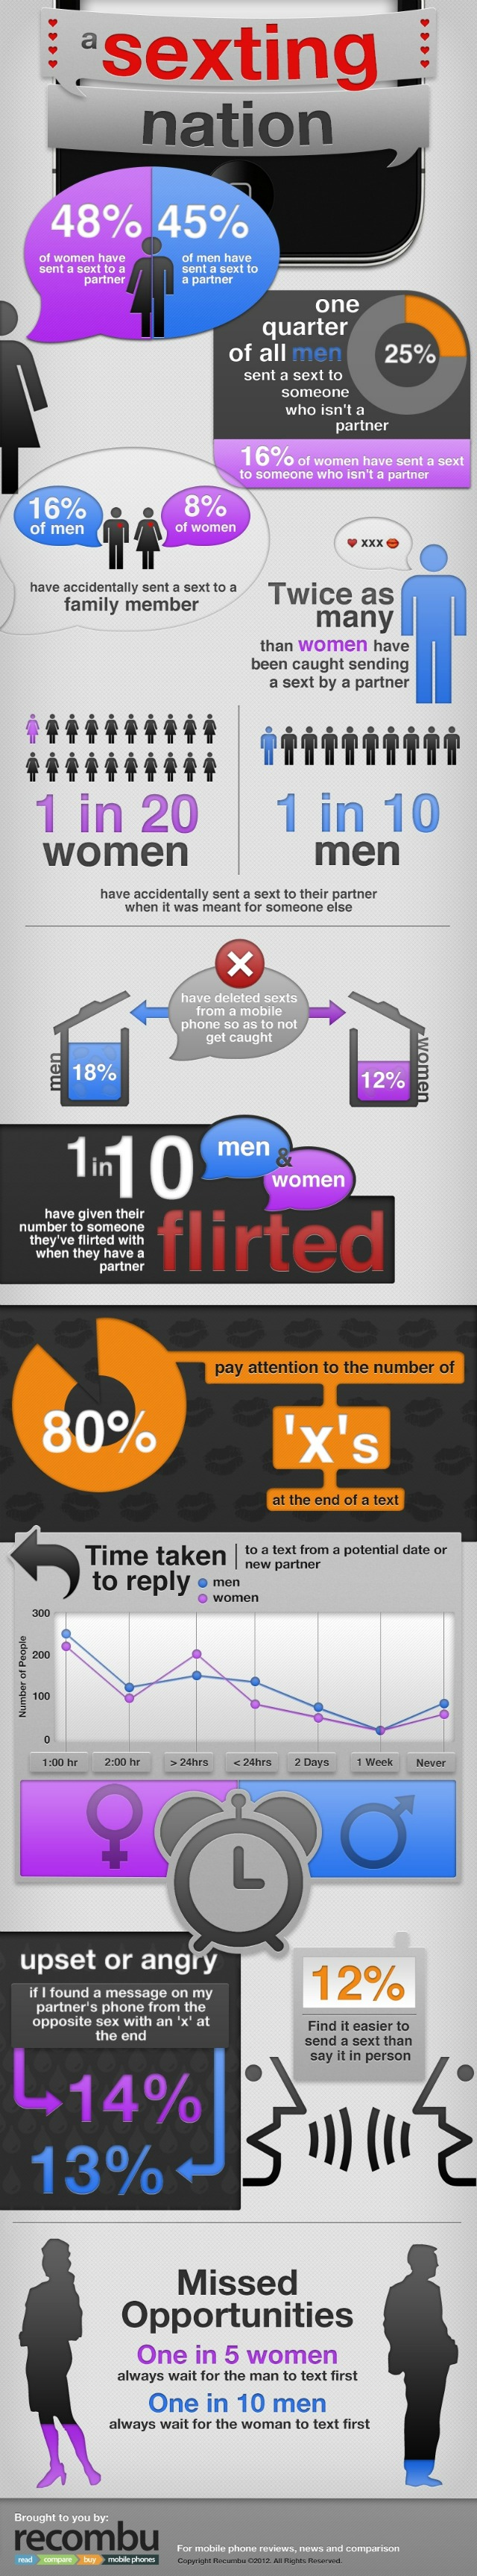 sexting infographic